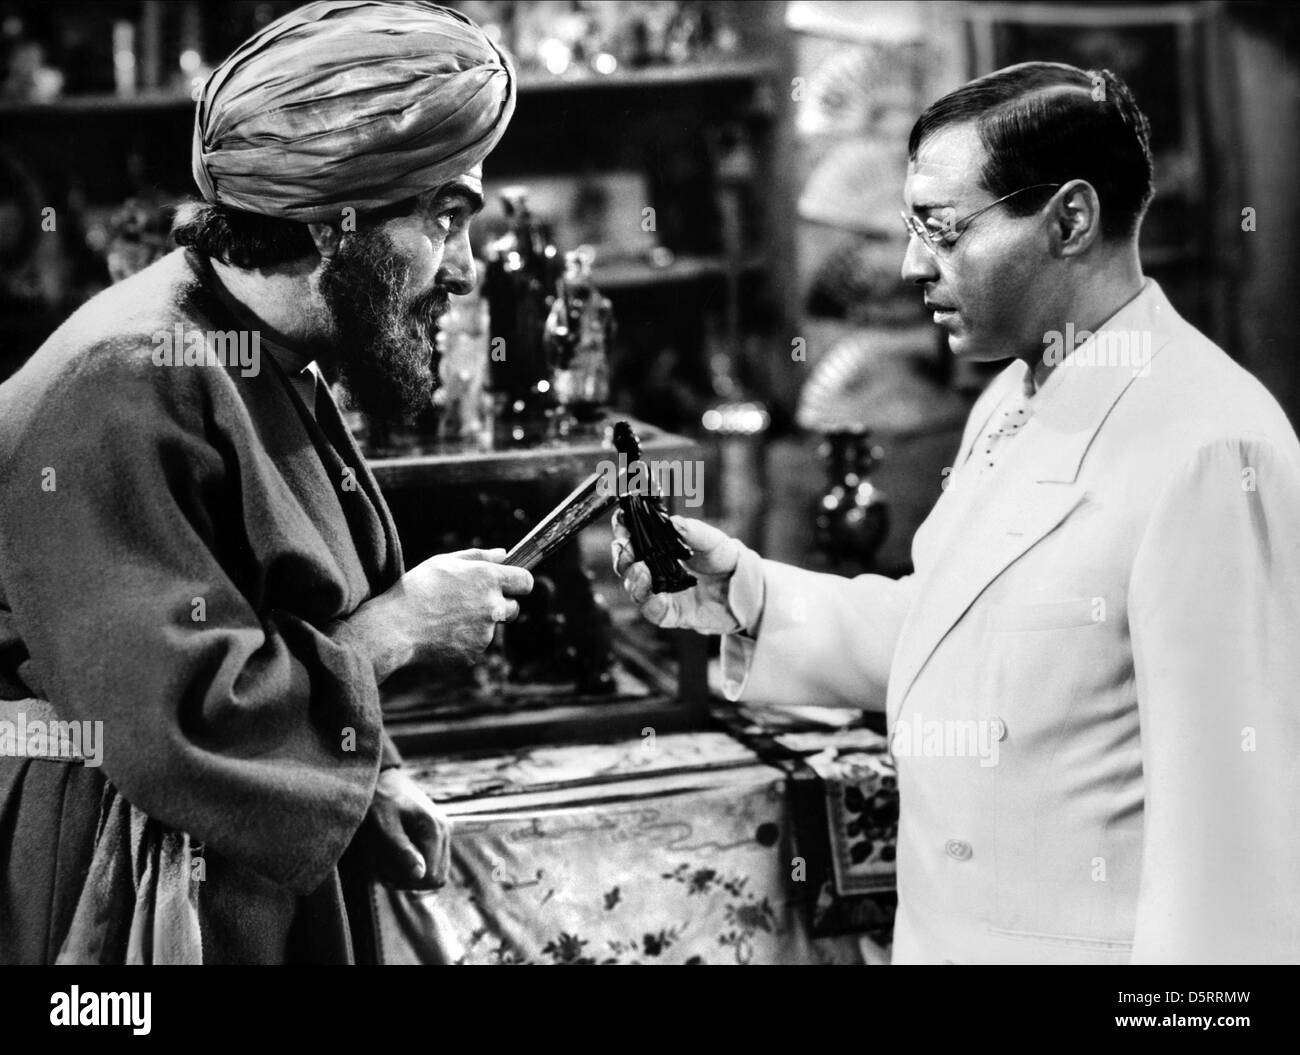 PETER LORRE MR. MOTO TAKES A CHANCE (1938) - Stock Image